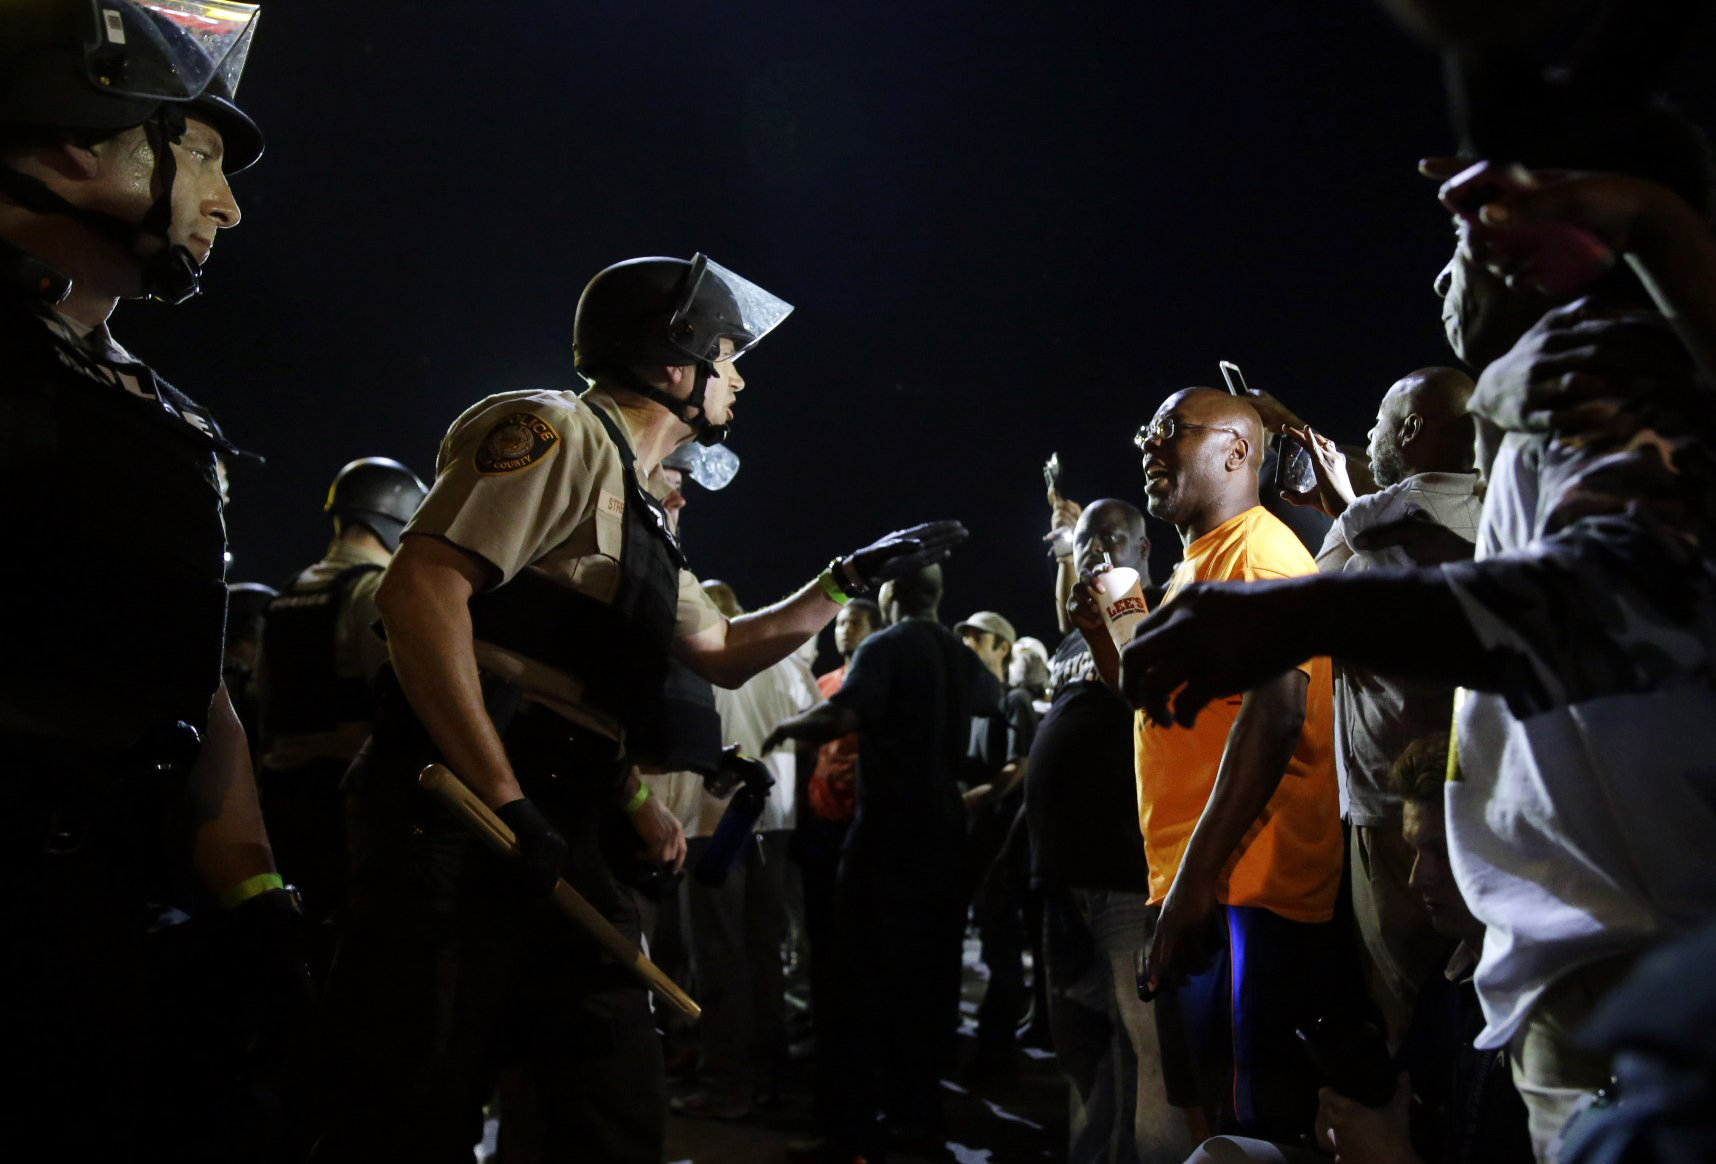 Officers and protesters face off along West Florissant Avenue on Aug. 10, 2015, in Ferguson, Mo.